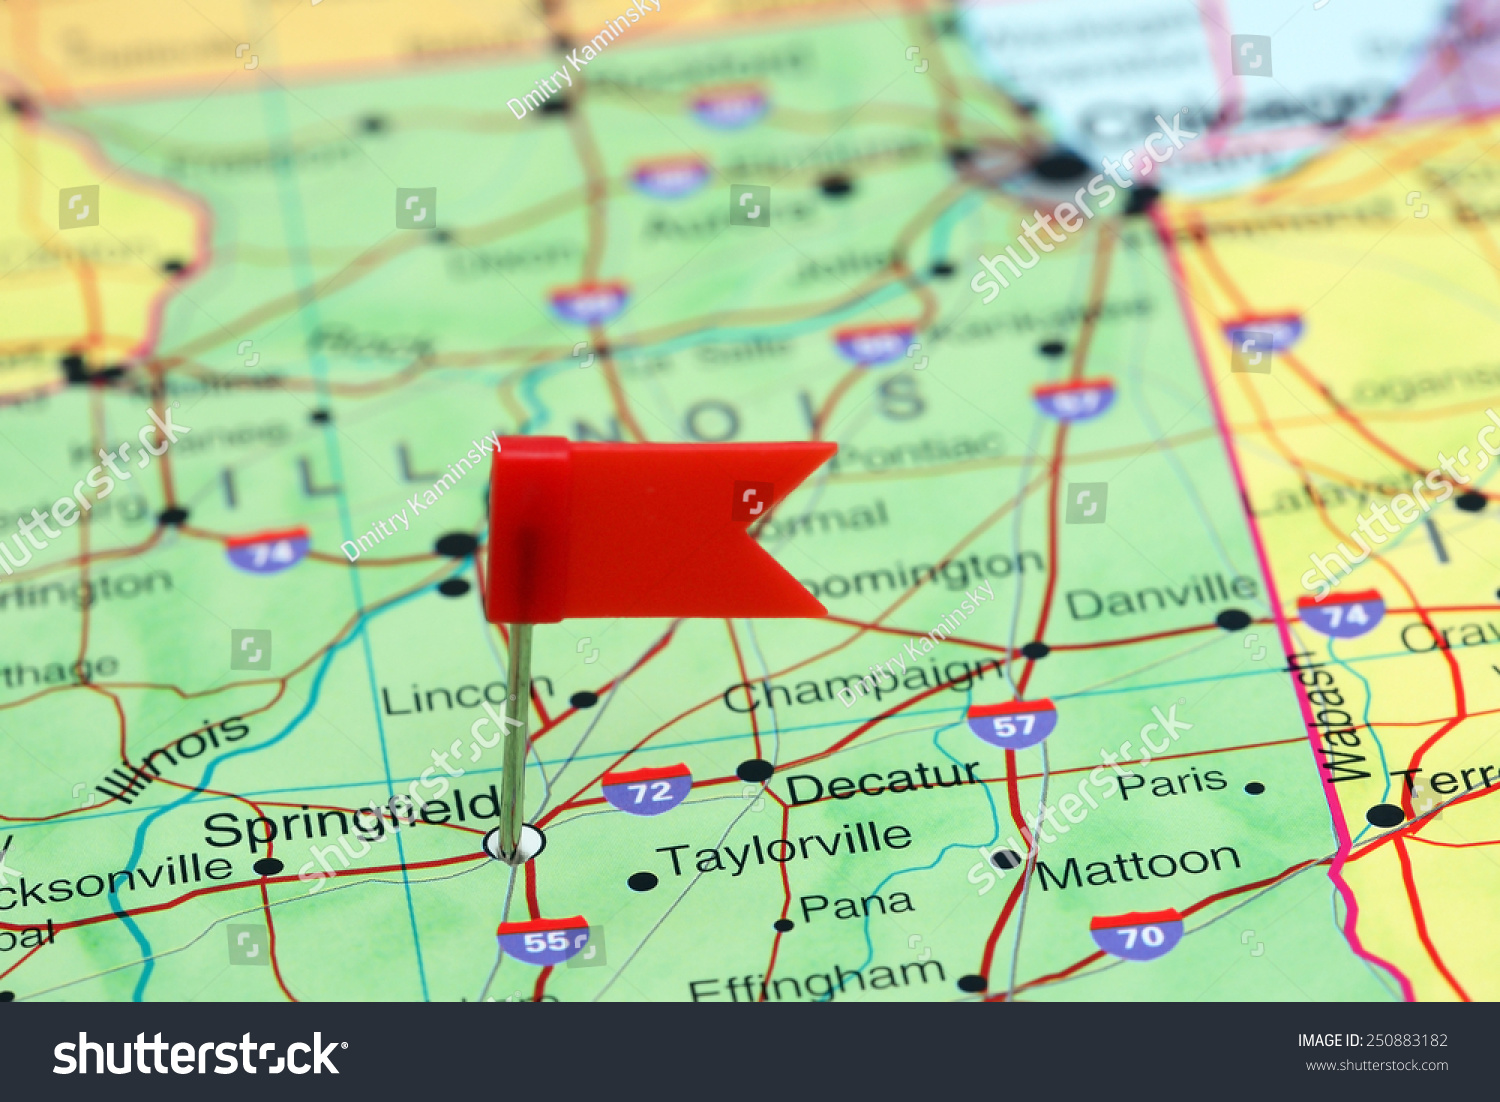 Springfield Pinned On Map Usa Stock Photo 250883182 Shutterstock